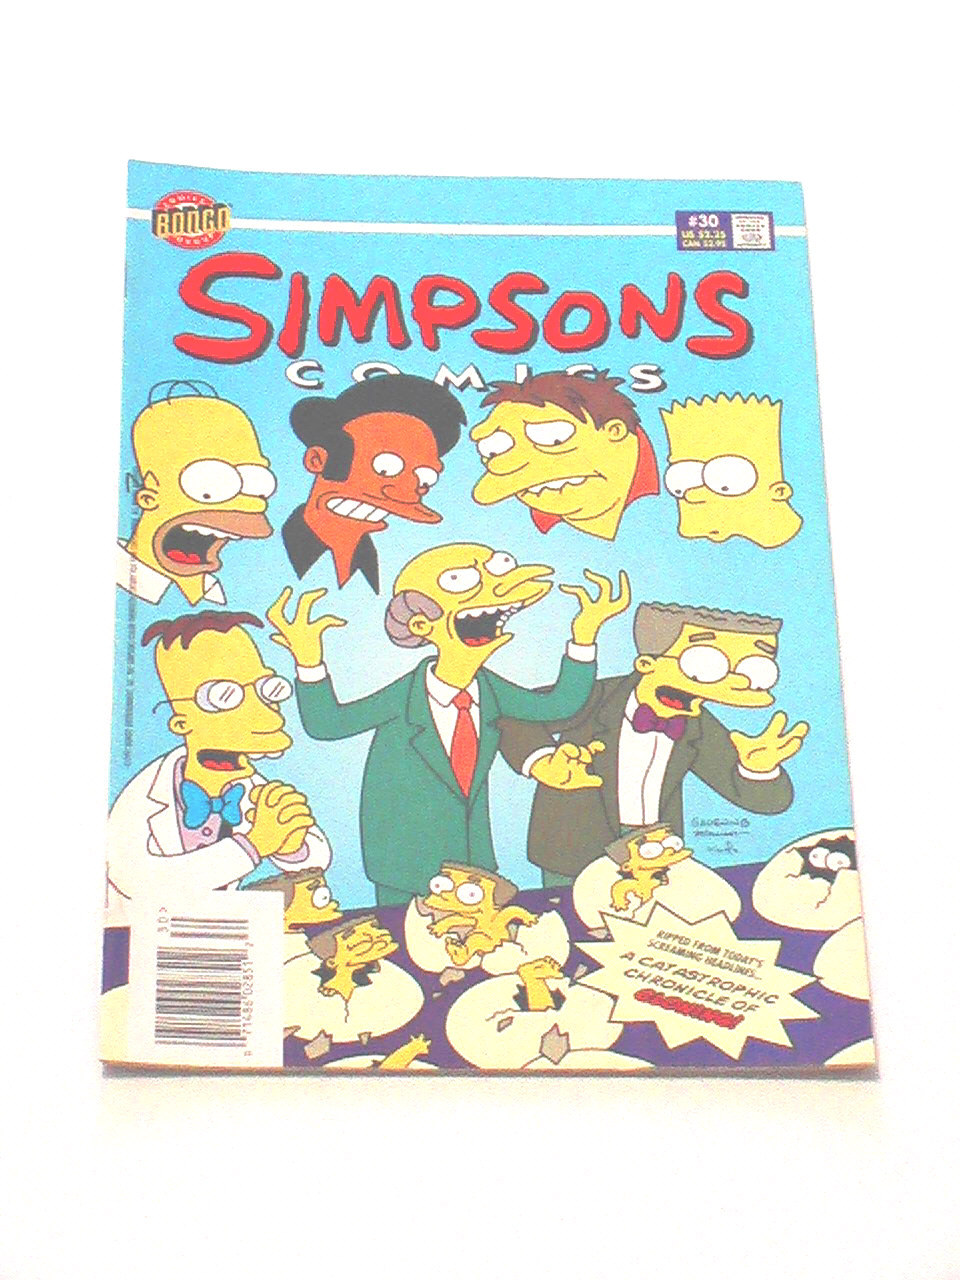 Simpsons Comics - Issue #30, 1997